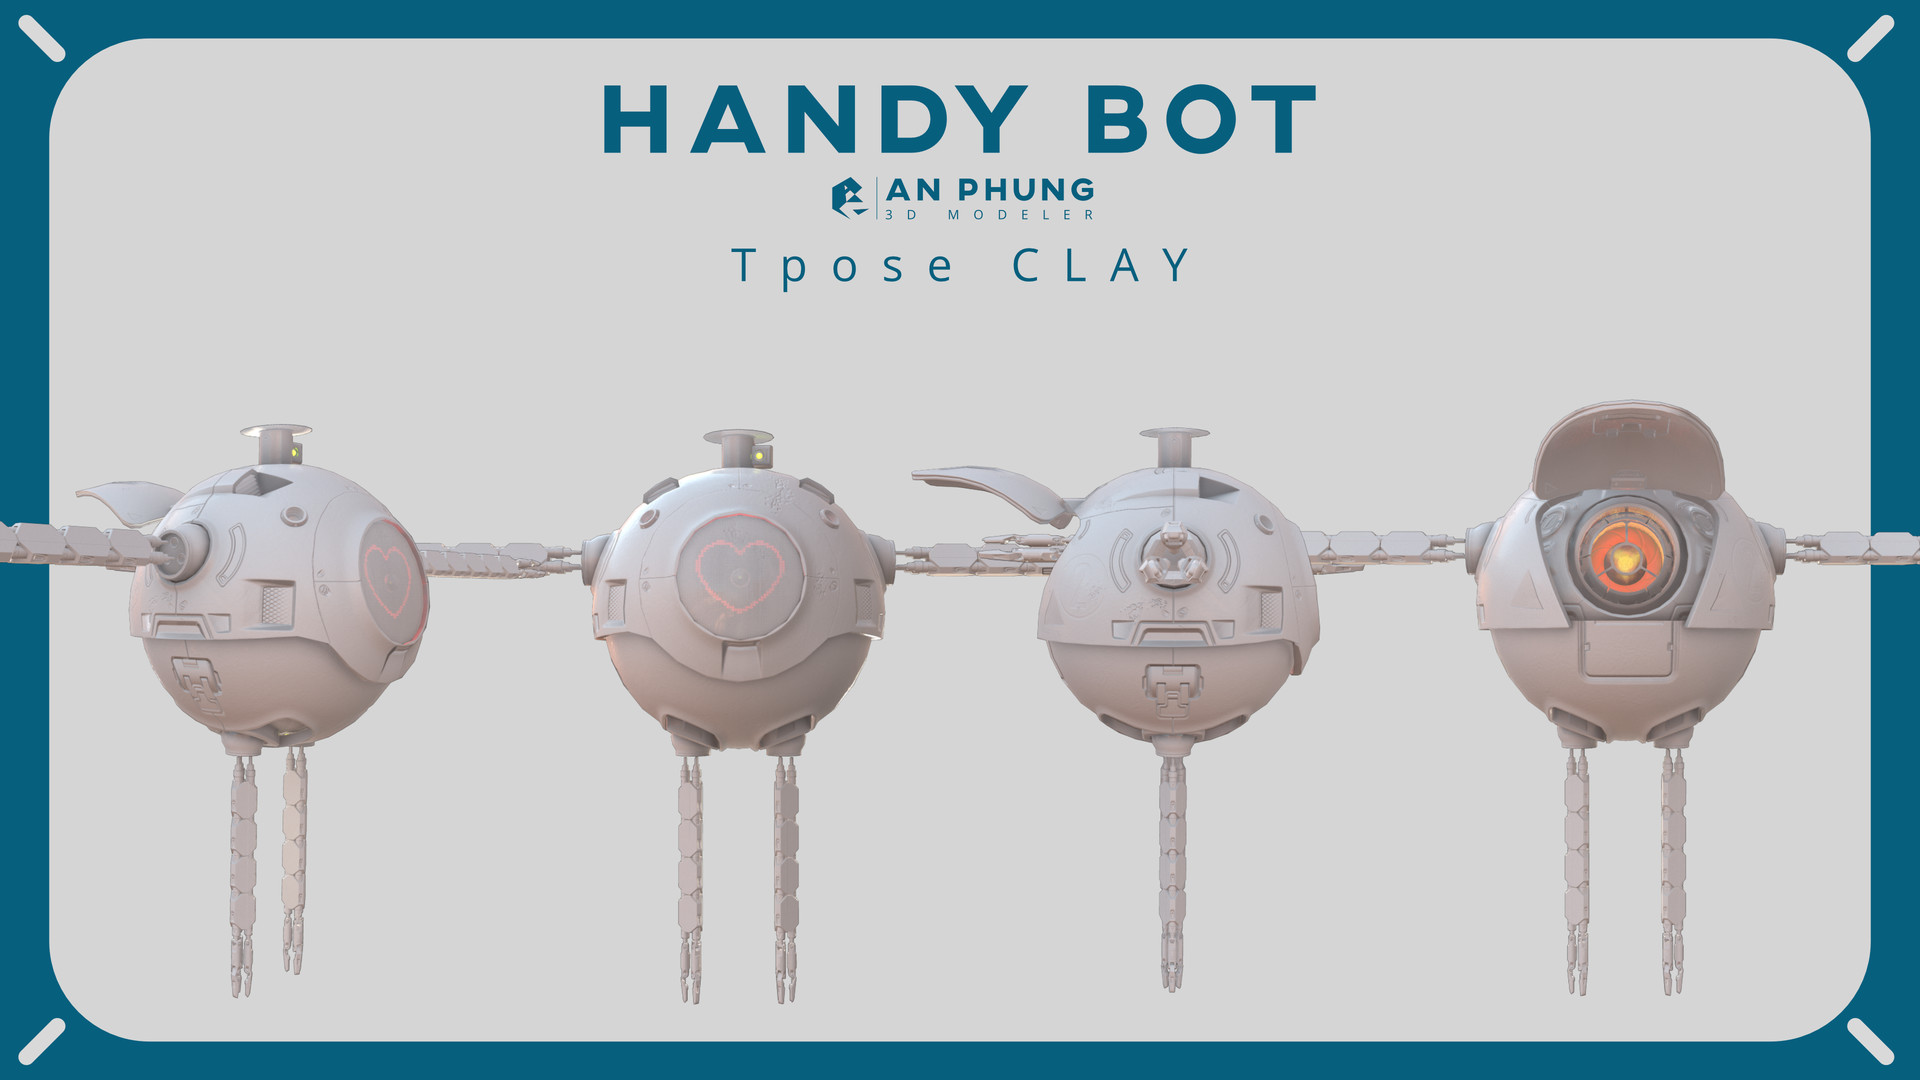 An phung phung handybot final tpose clay